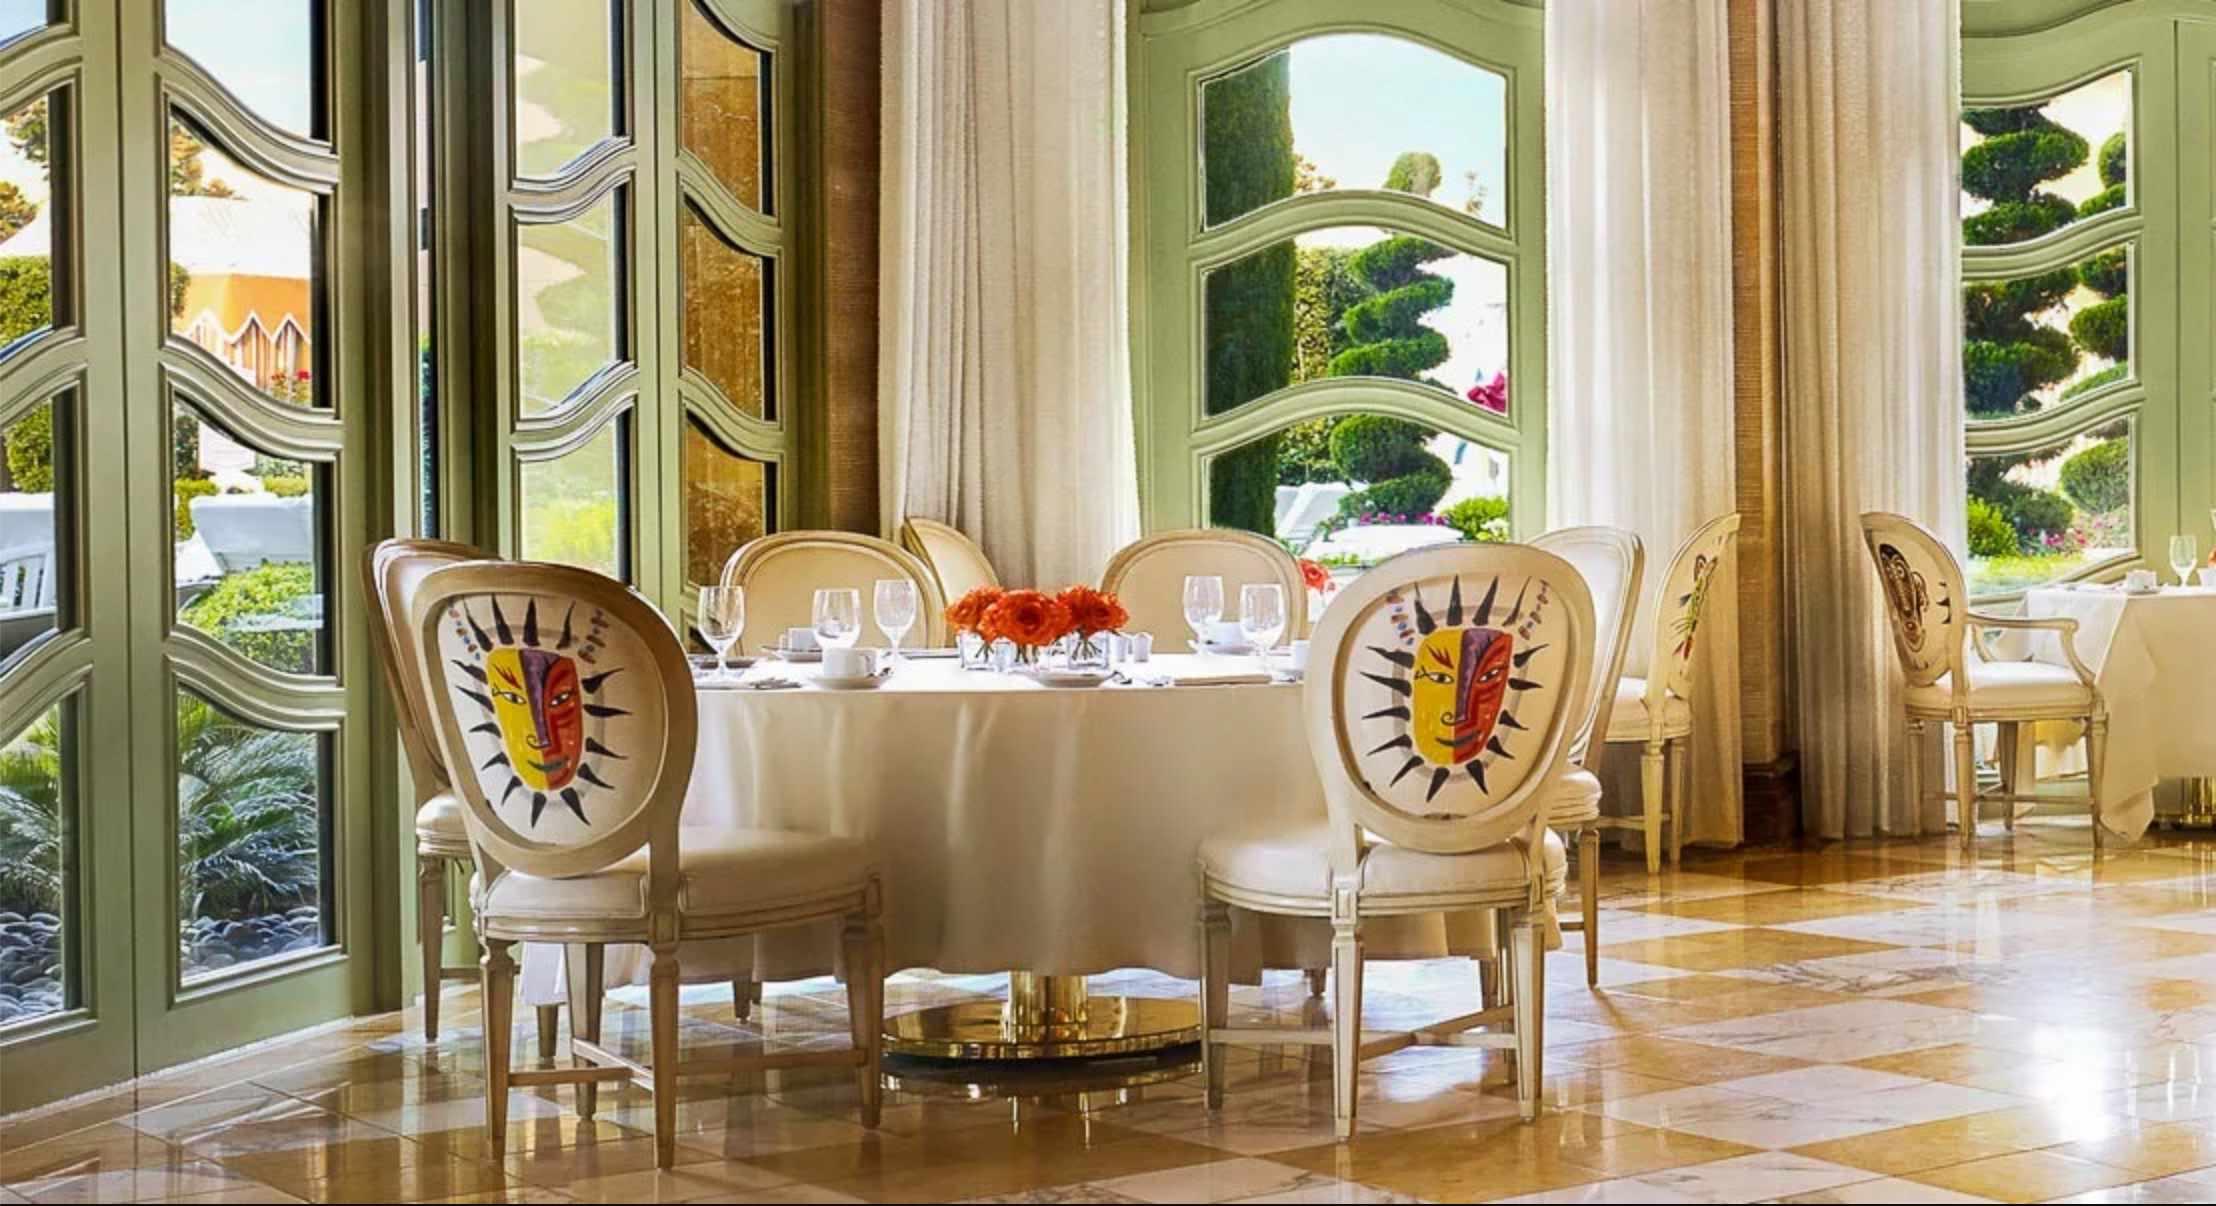 White table setting and chairs with colorful masks painted on the back